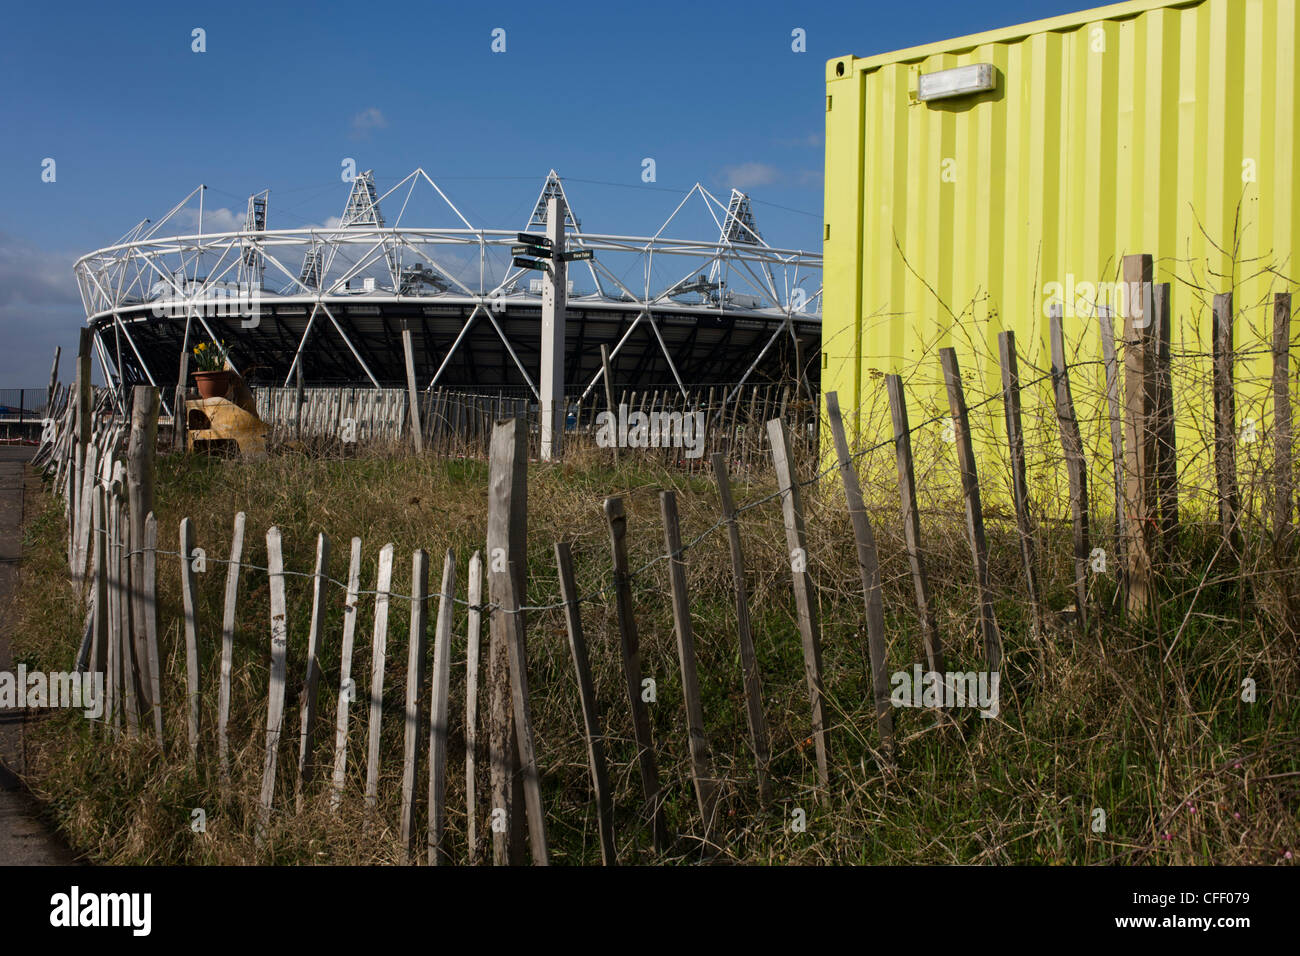 Incongruous landscape of bygone era fencing, shipping container and new 2012 Olympic stadium on Stratford Greenway - Stock Image